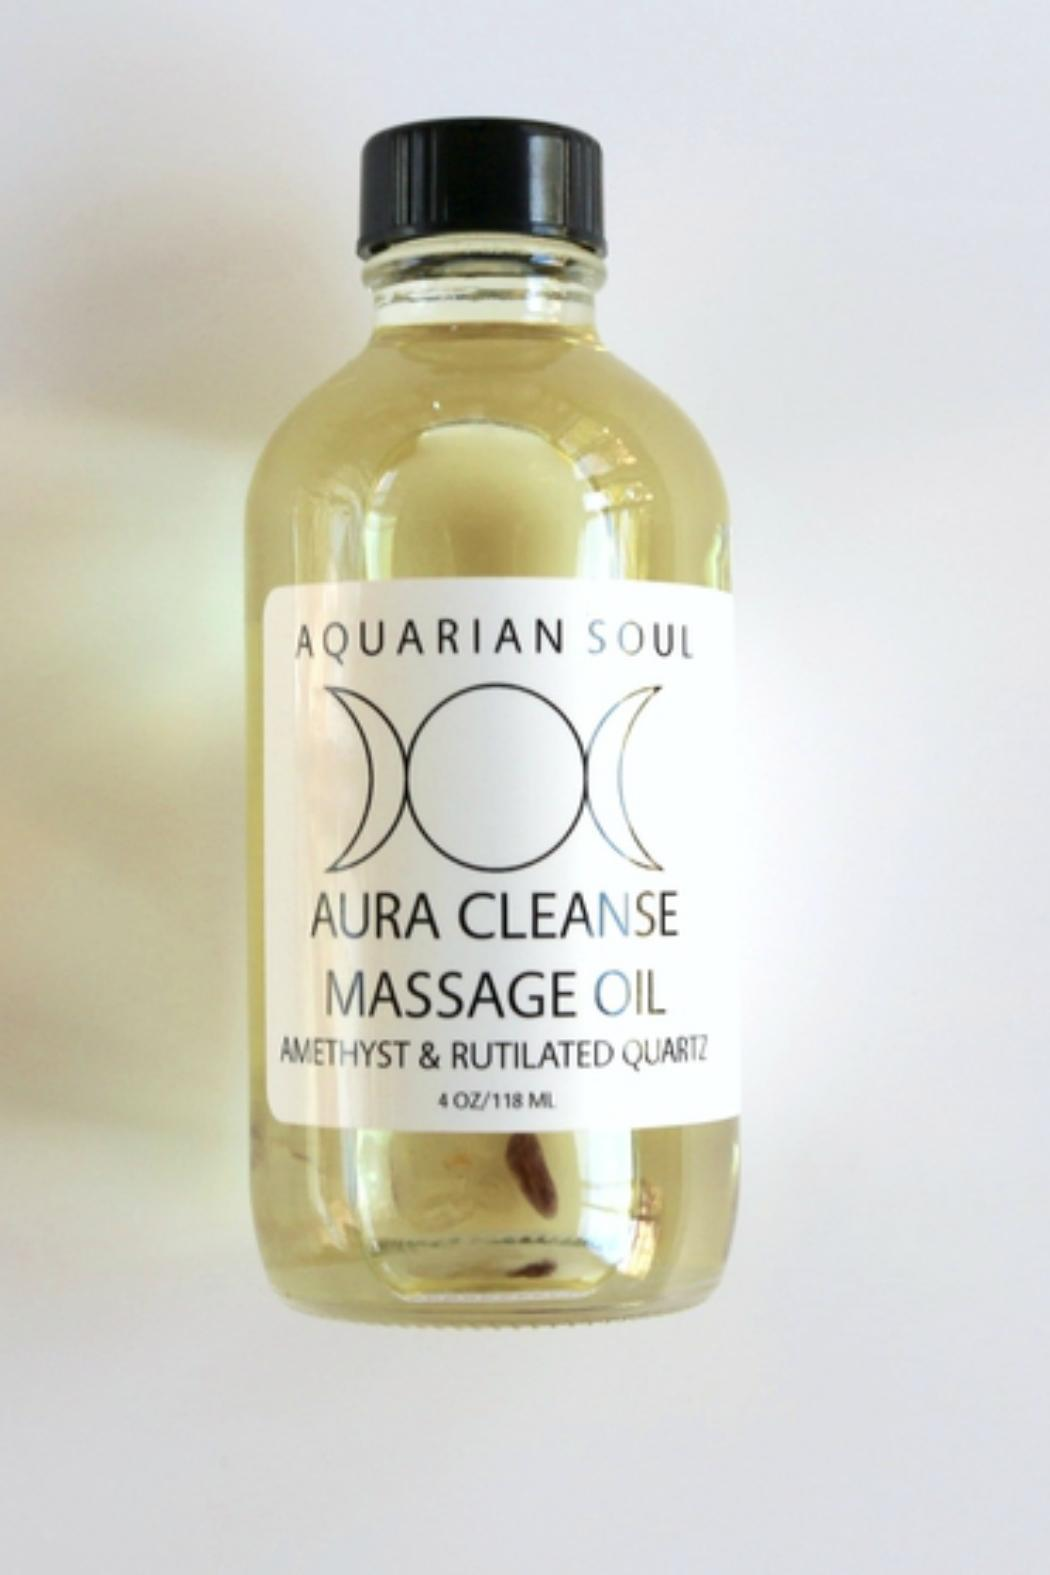 Aquarian Soul Aura Cleanse Gemstone - Main Image